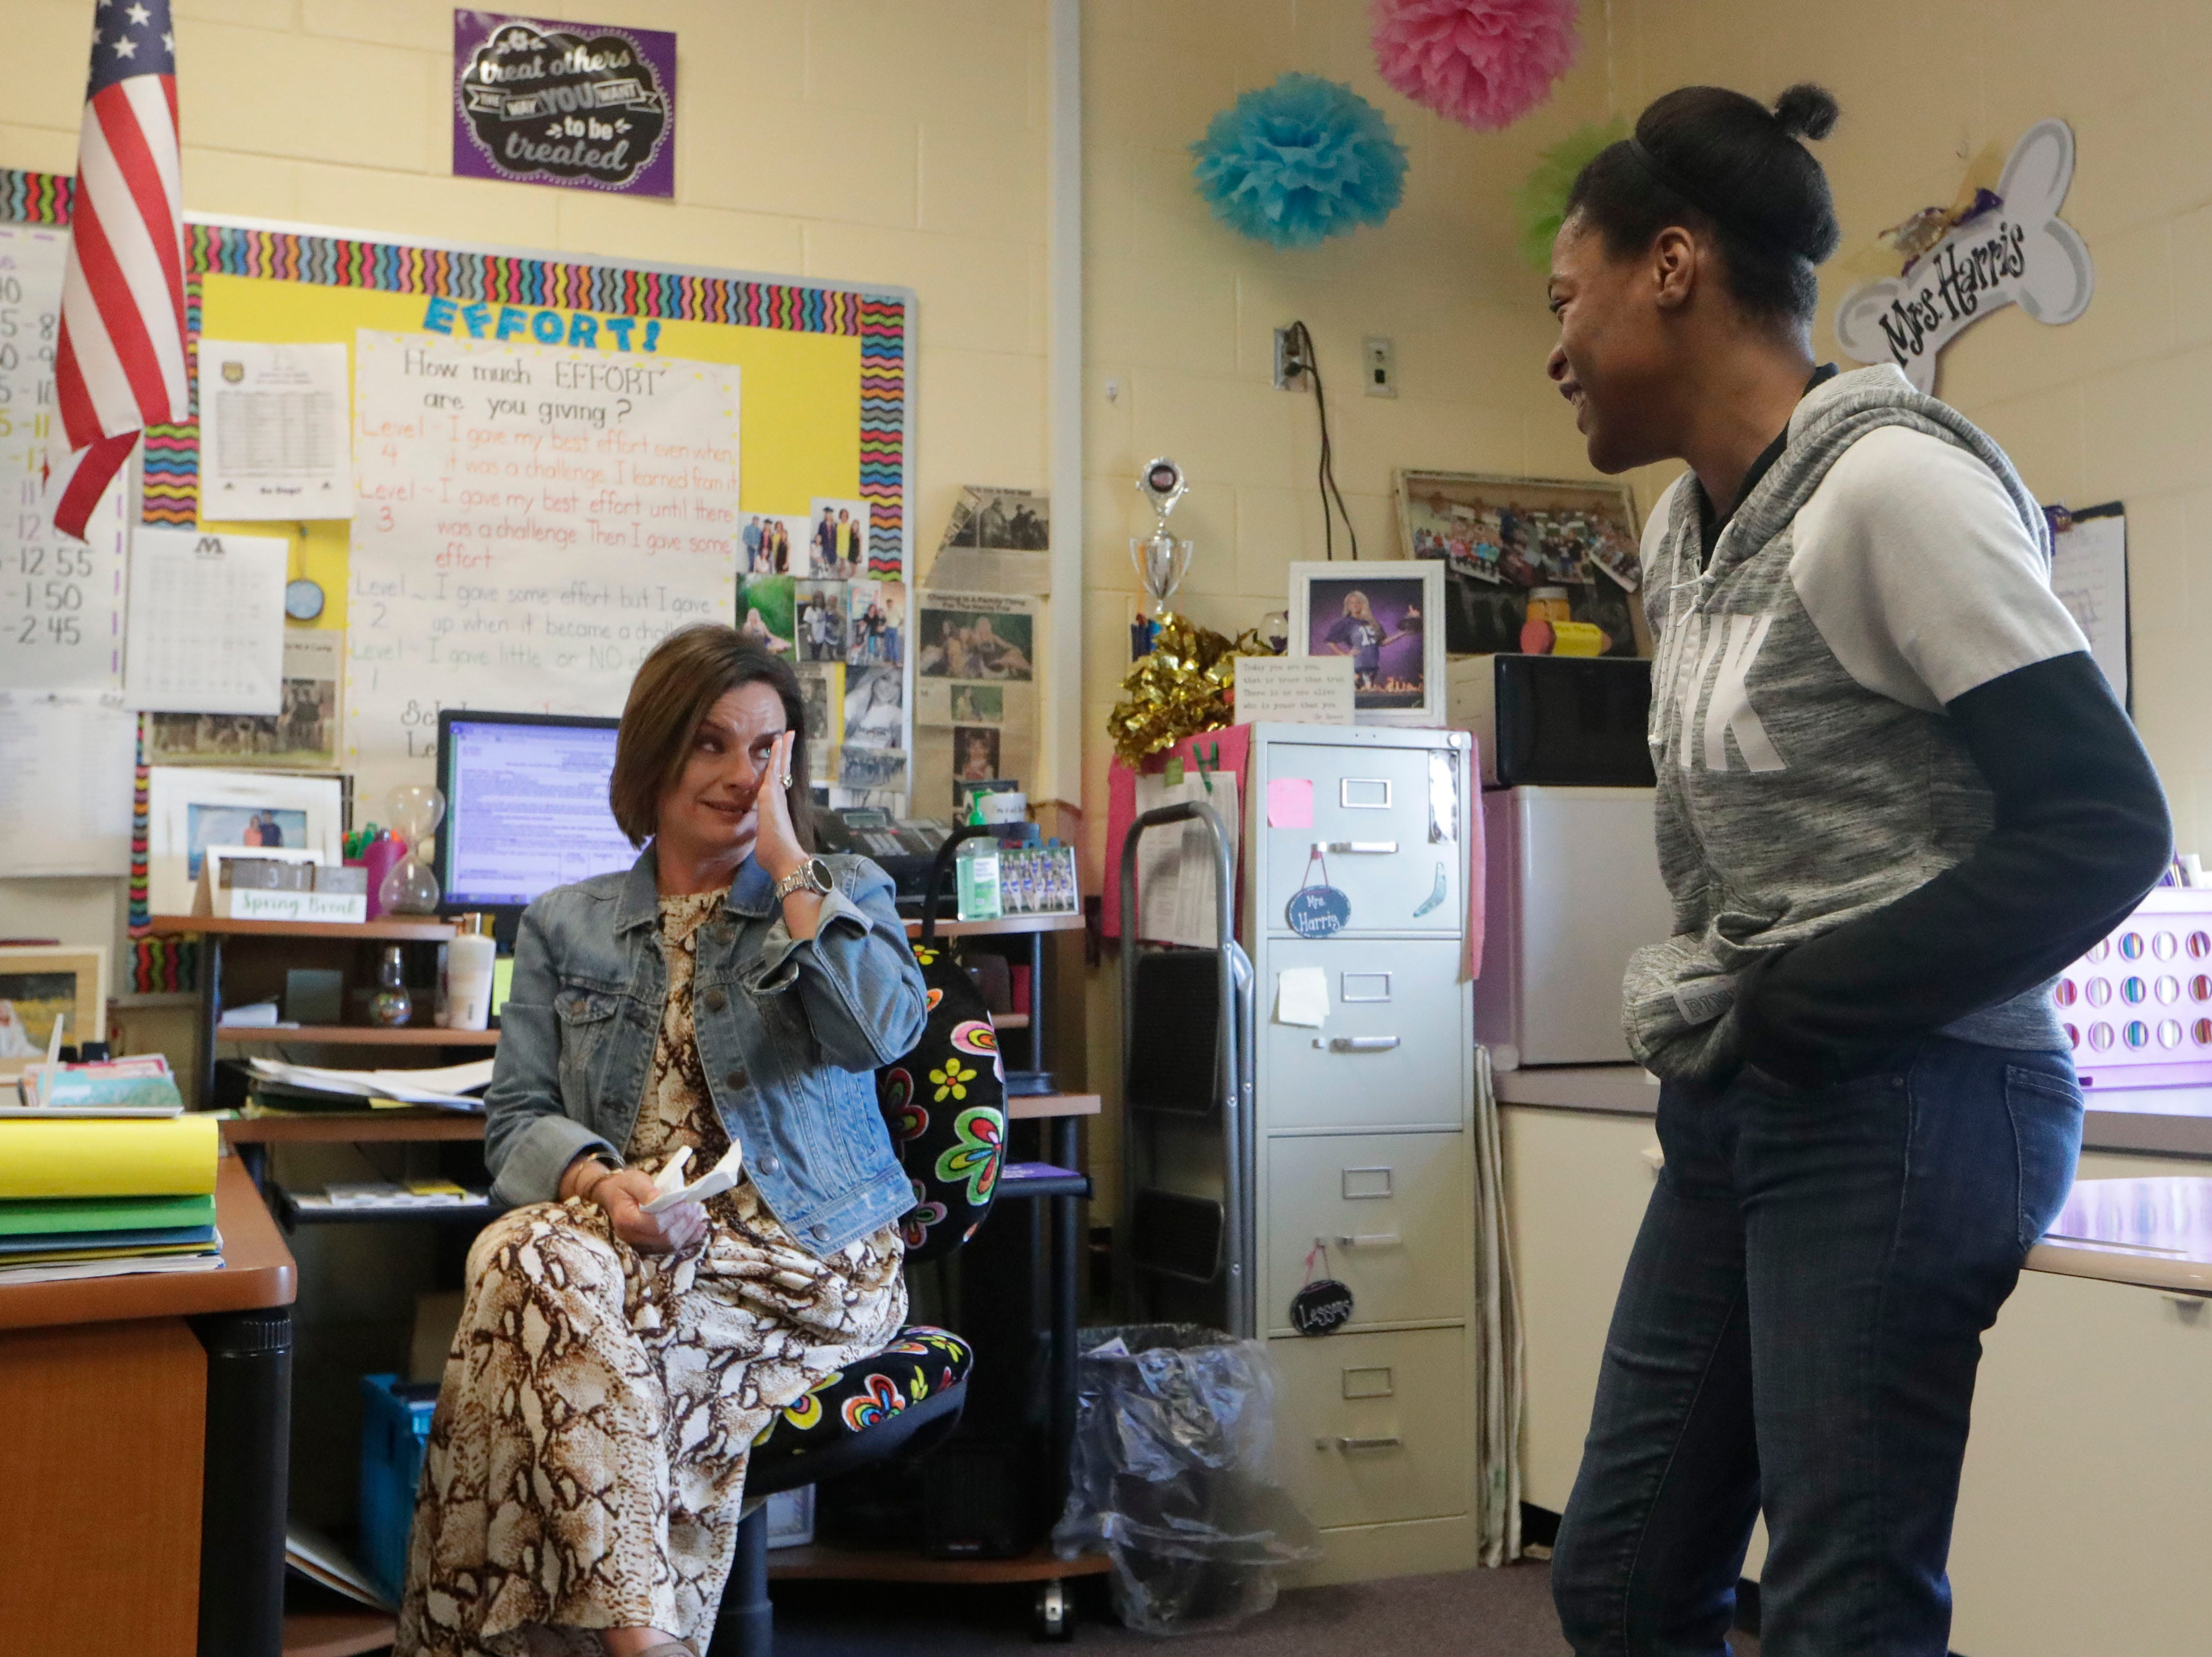 Jay-Hda McGriff, right, shares why Brandi Harris, left, is her favorite teacher at Marianna High School, Thursday Feb. 7, 2019. Harris has helped McGriff and her family since Hurricane Michael left them without a home and even more so since the passing of McGriff's mother in January.